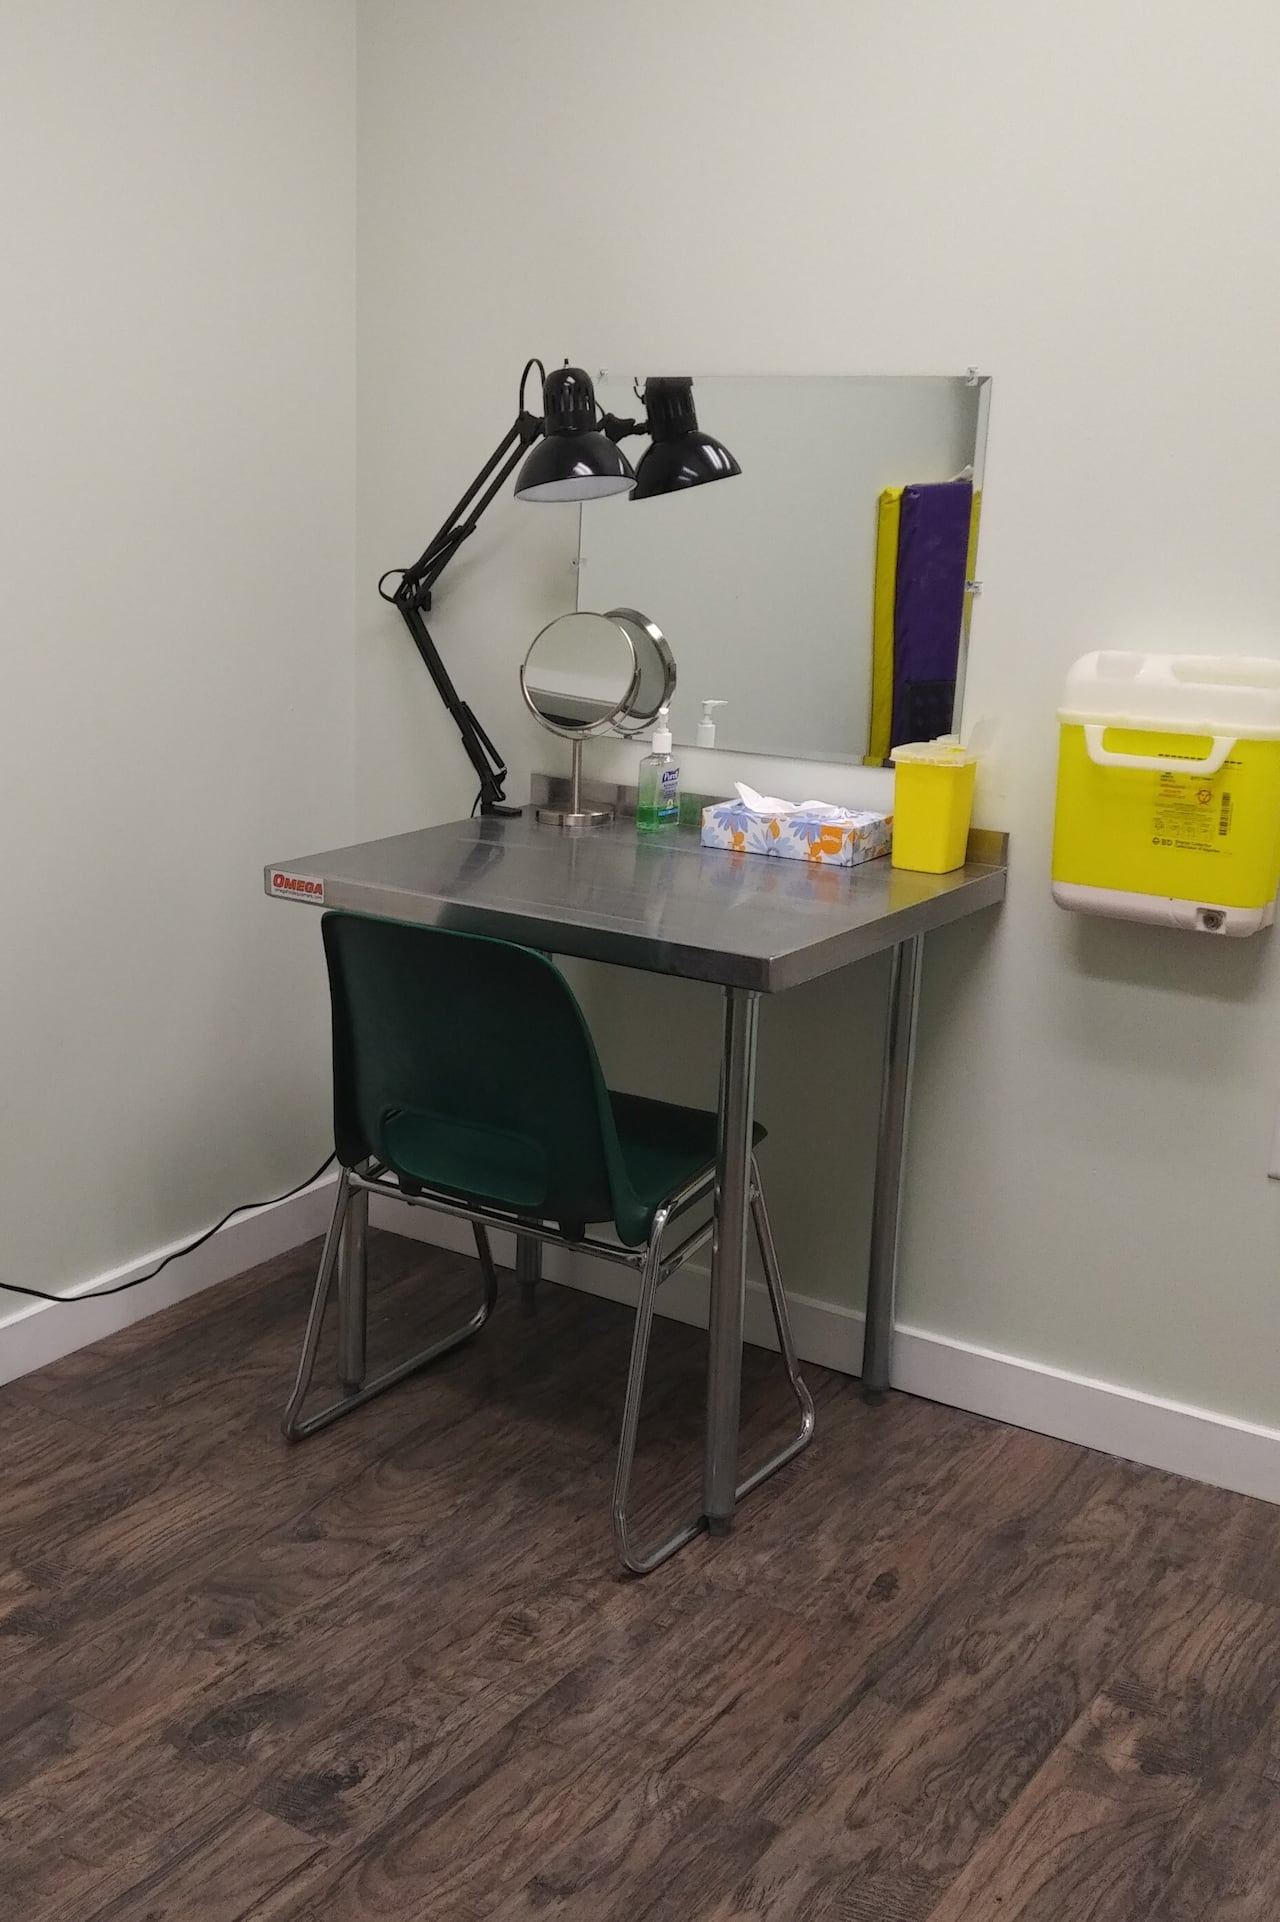 New temporary safe injection sites open in Kensington